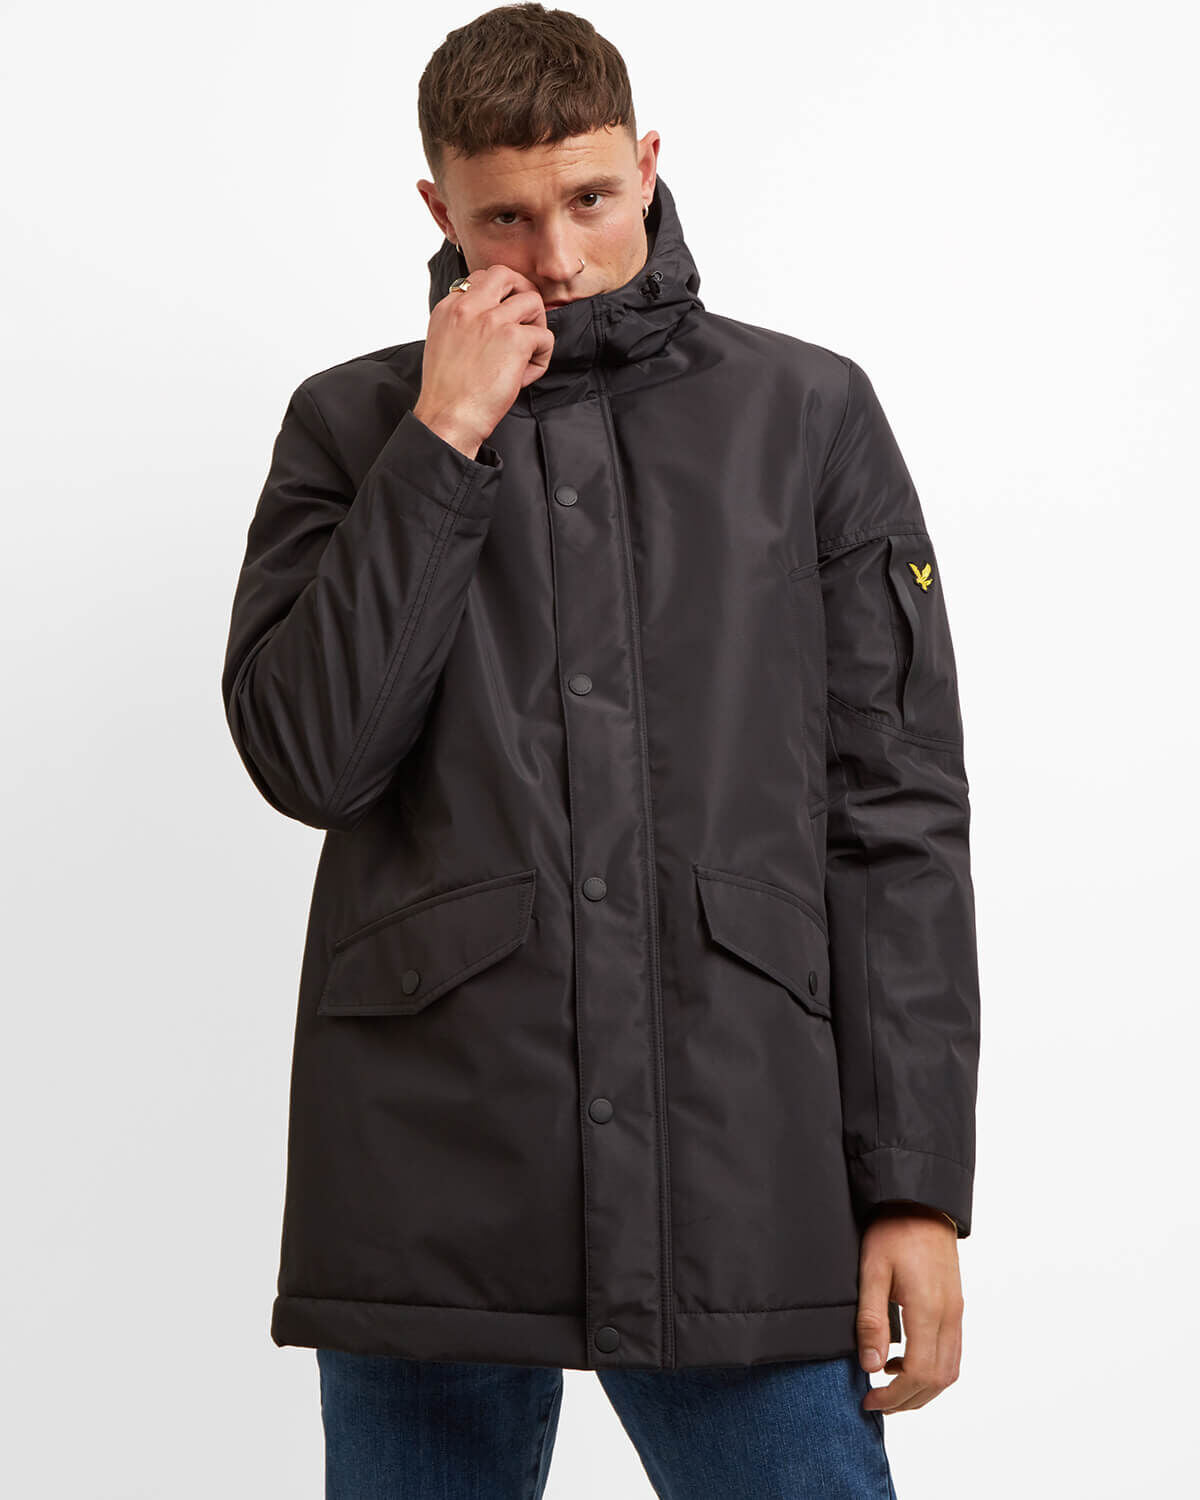 LYLE & SCOTT Technical Parka - BLACK - Frequency